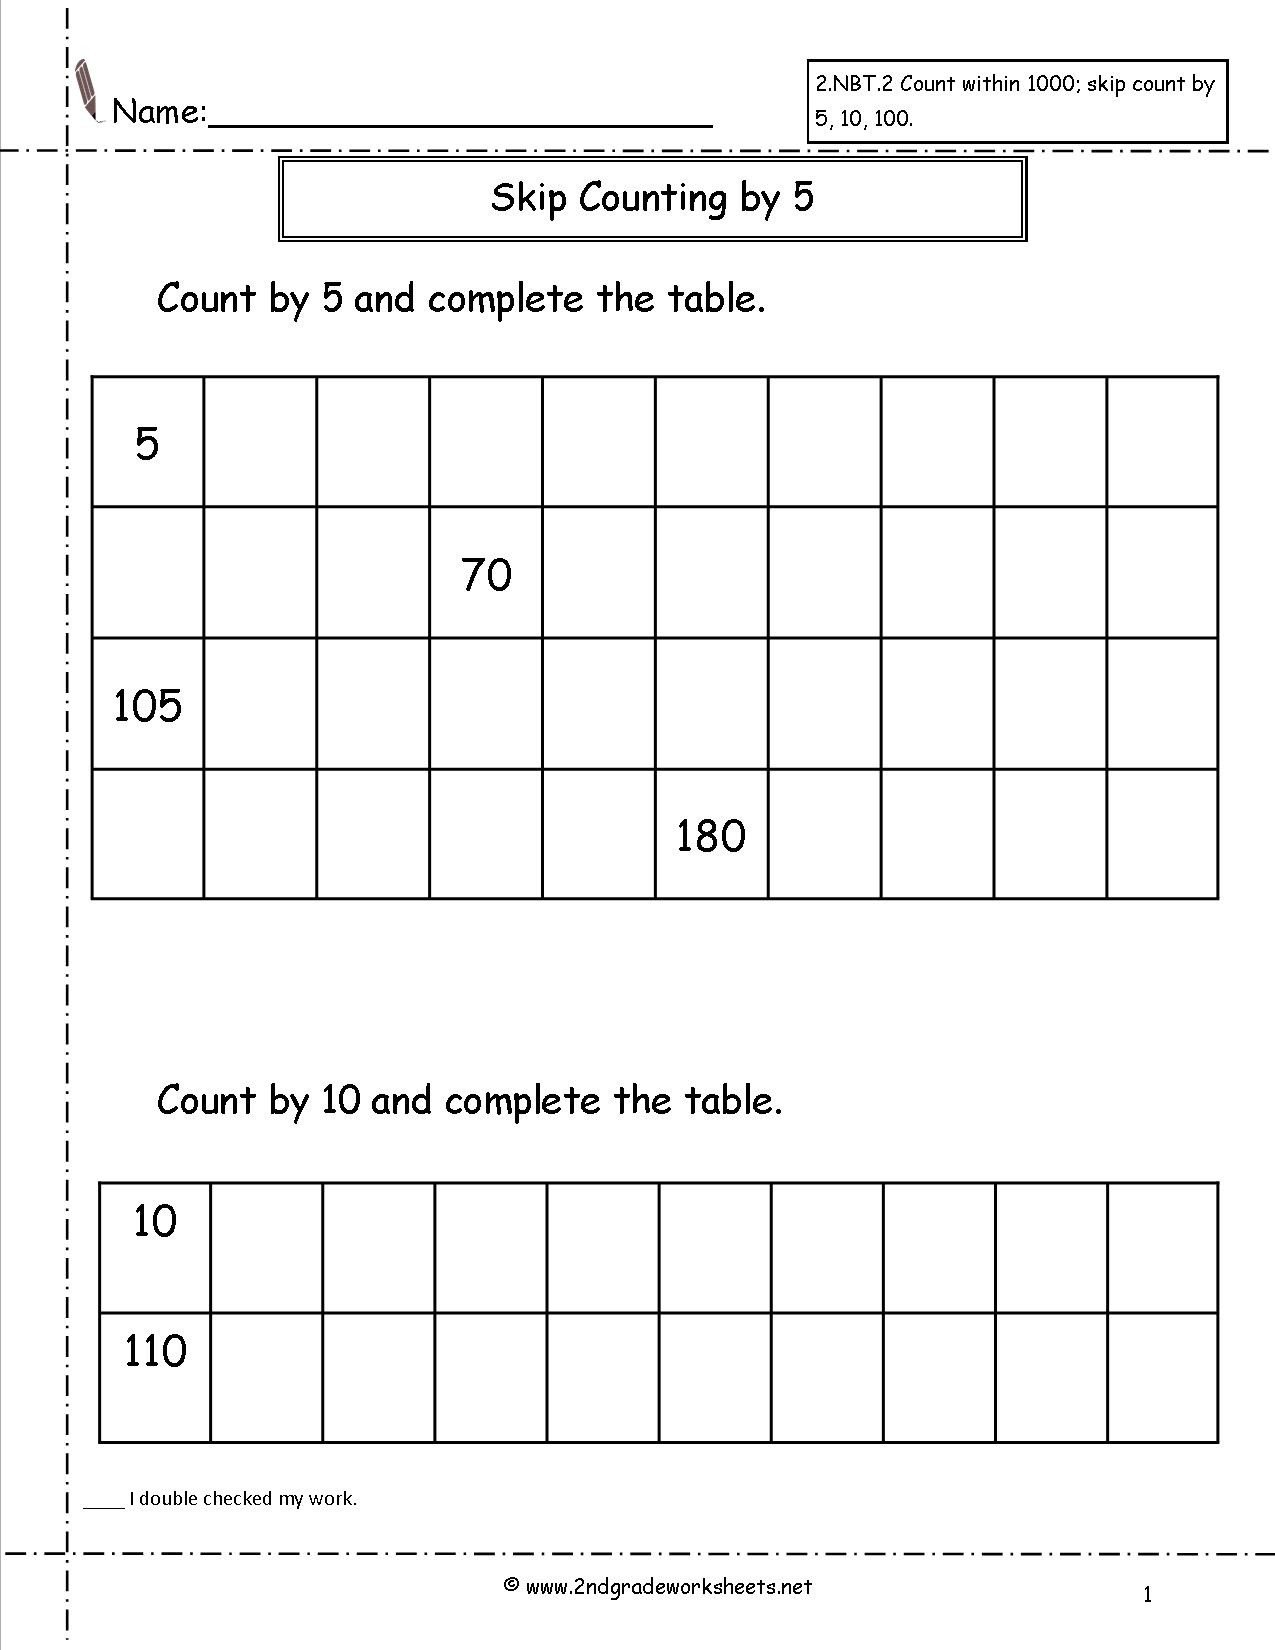 Skip Counting Worksheets 3rd Grade Algebra 2 Tutor Consonant sounds Worksheets Free Skip